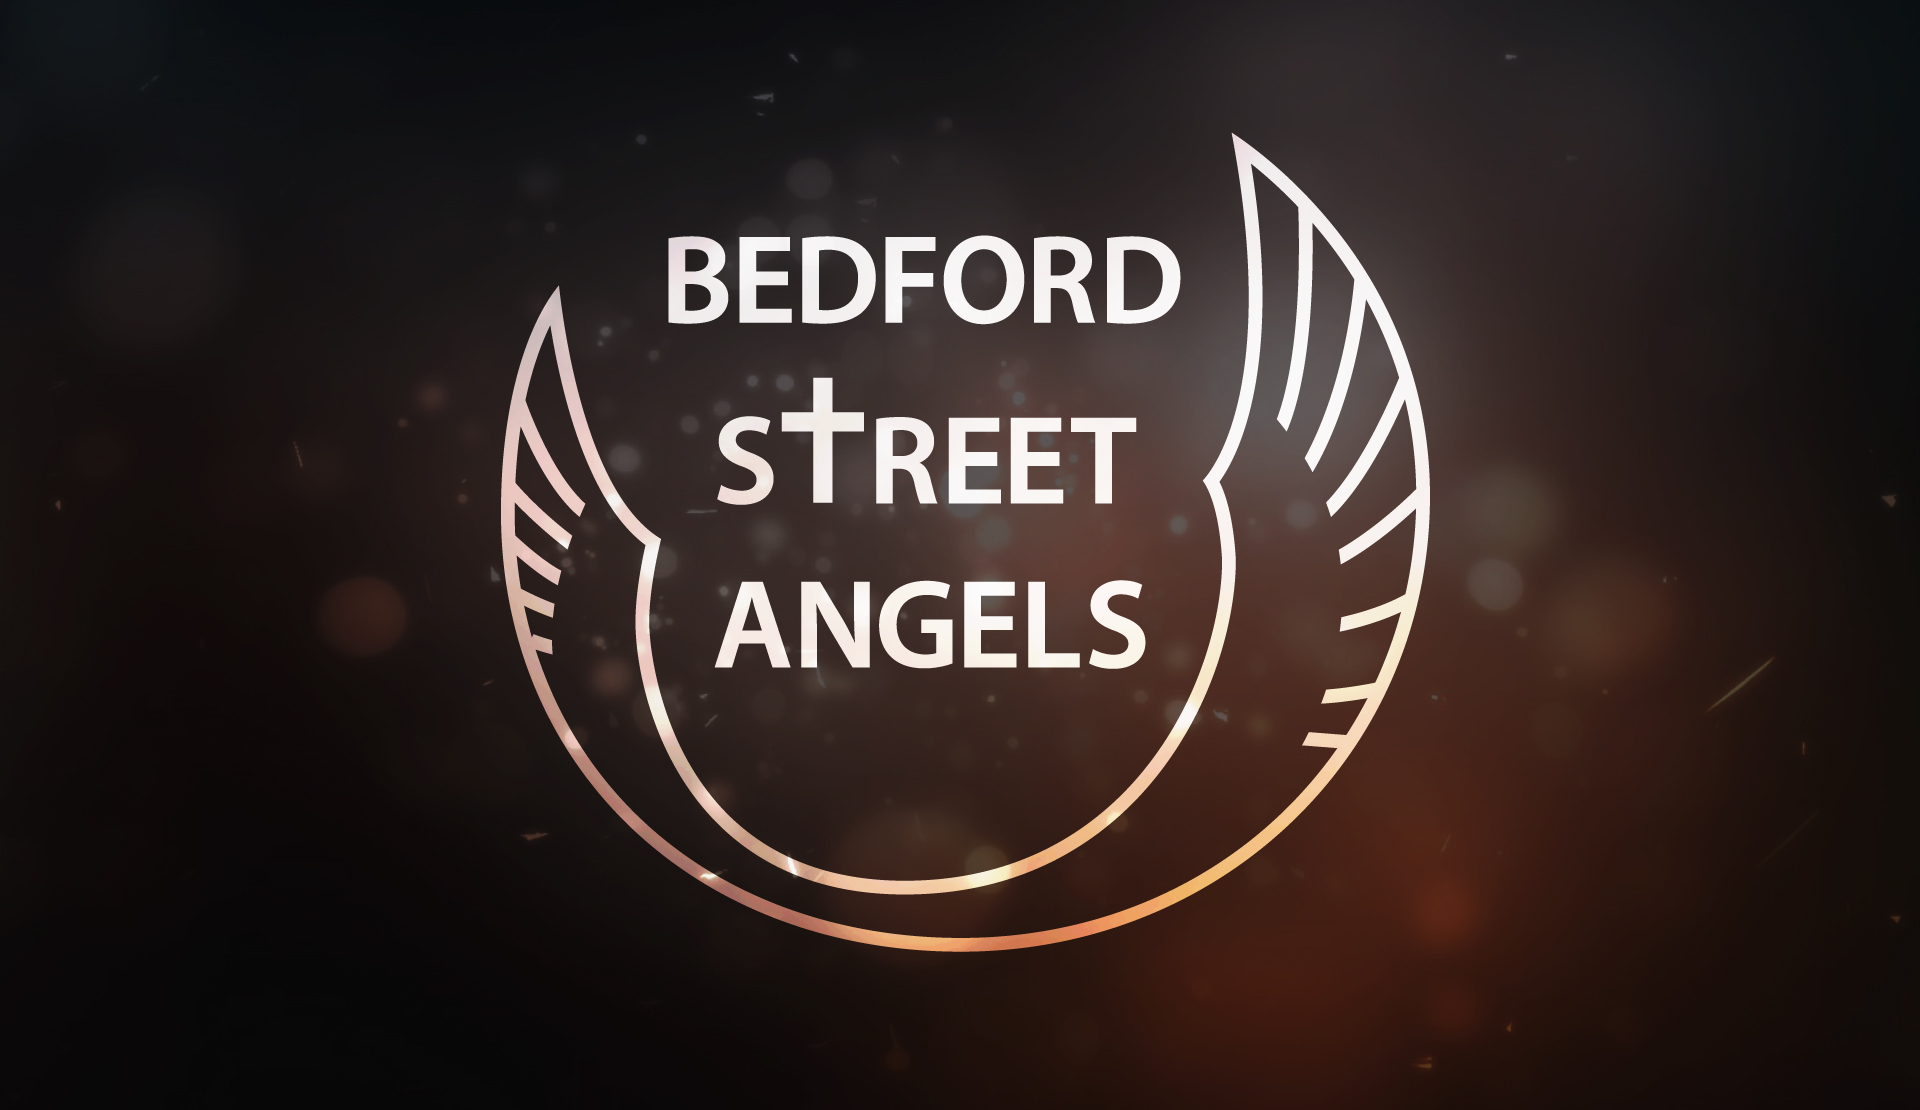 bedford street angels